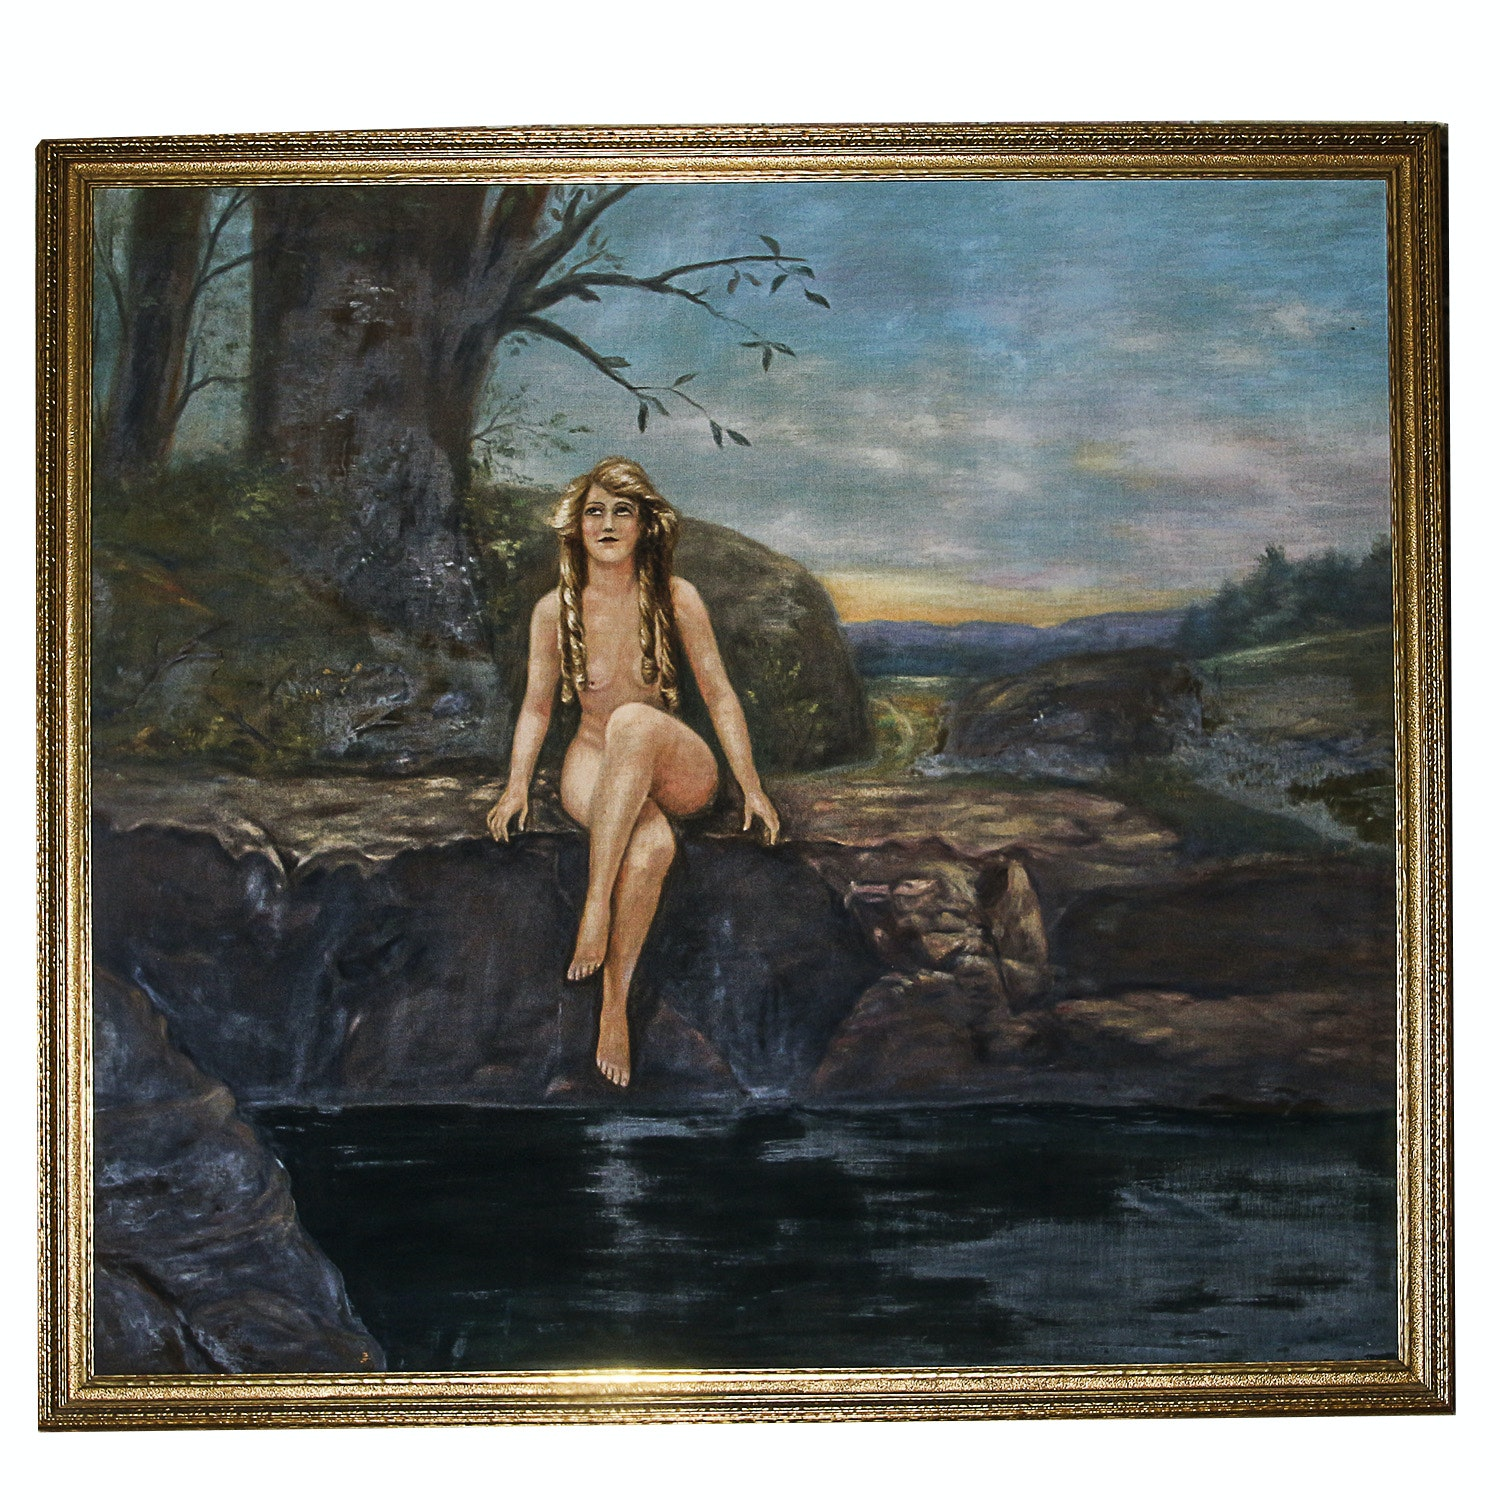 Large Oil Painting on Canvas of Nude Figure in Landscape